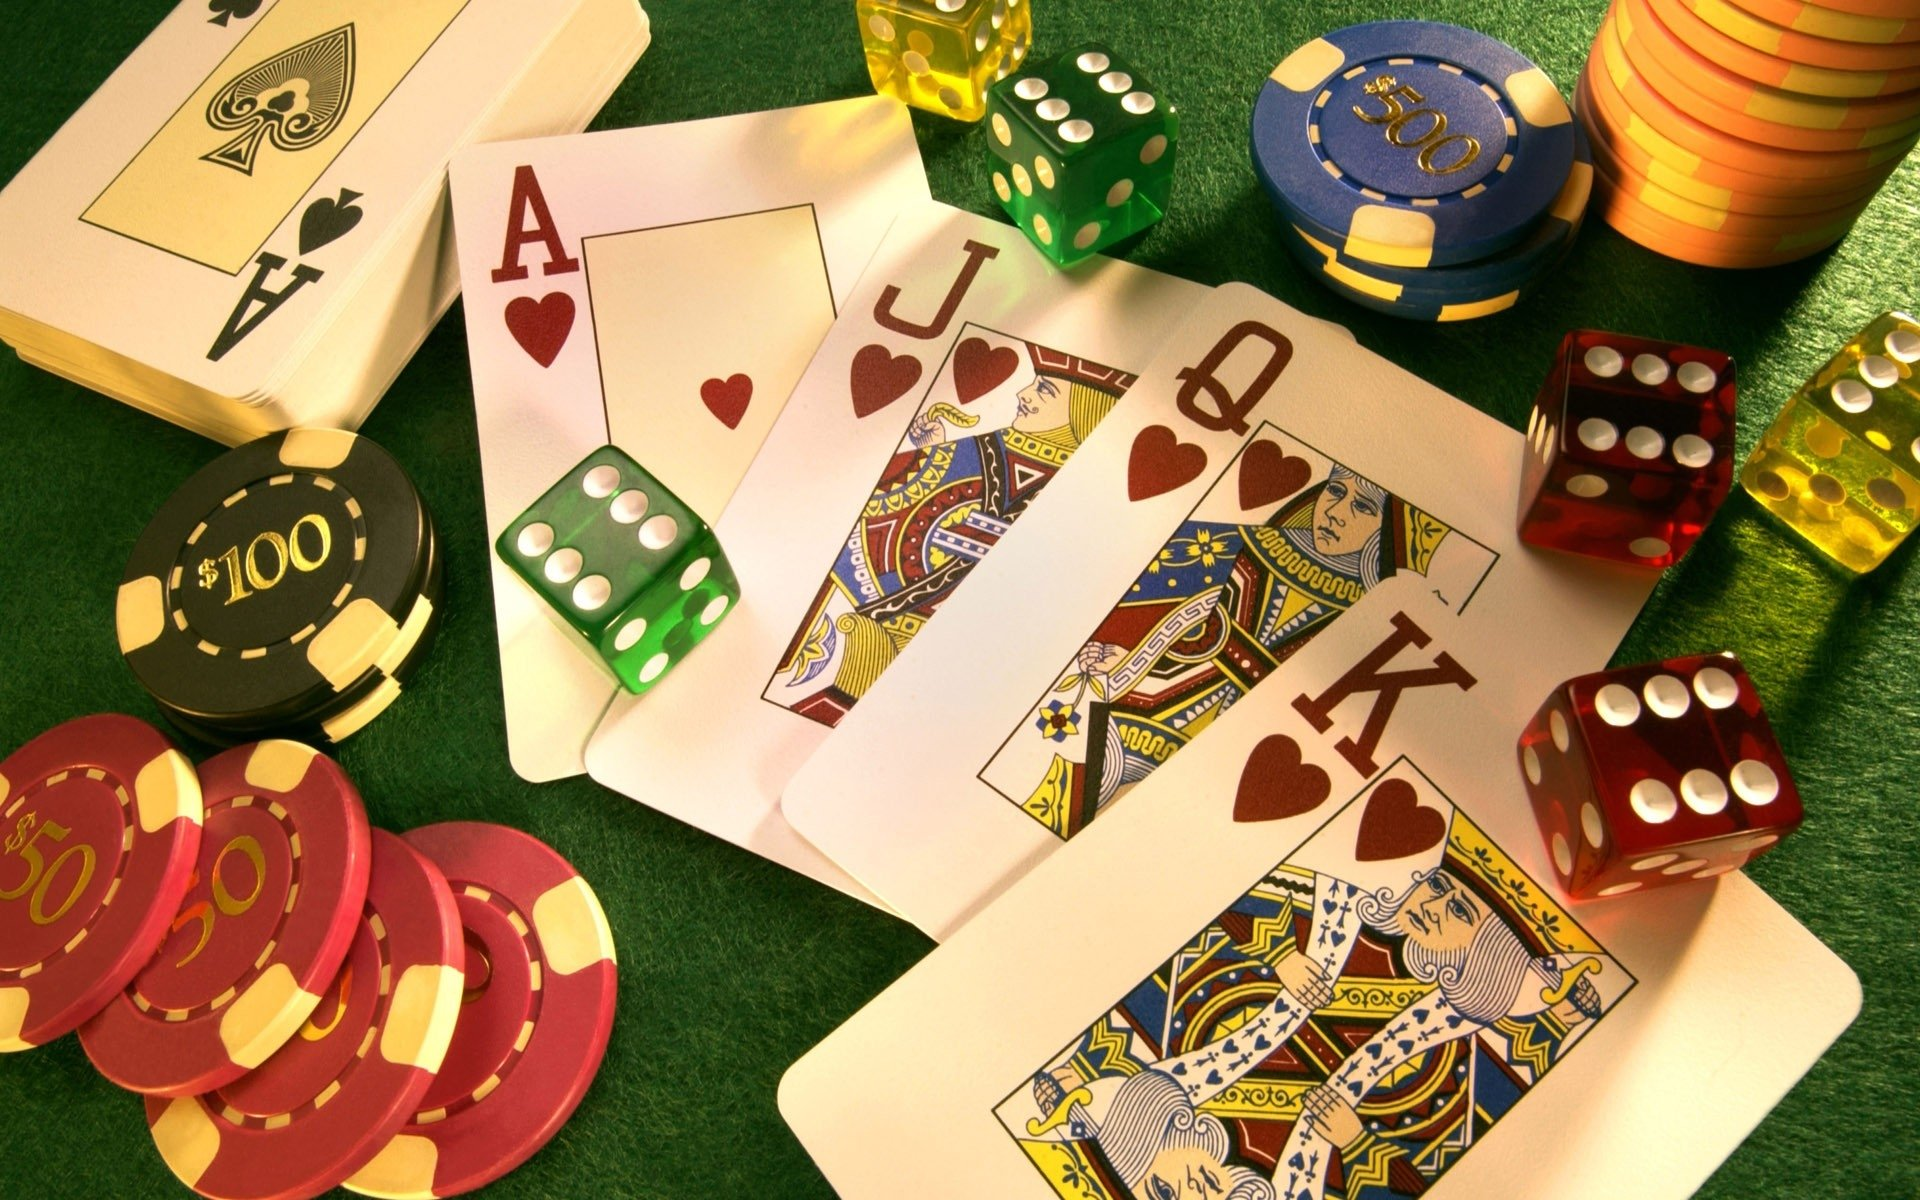 Baccarat Can Be The Worst Enemy Nine Ways To Conquer It